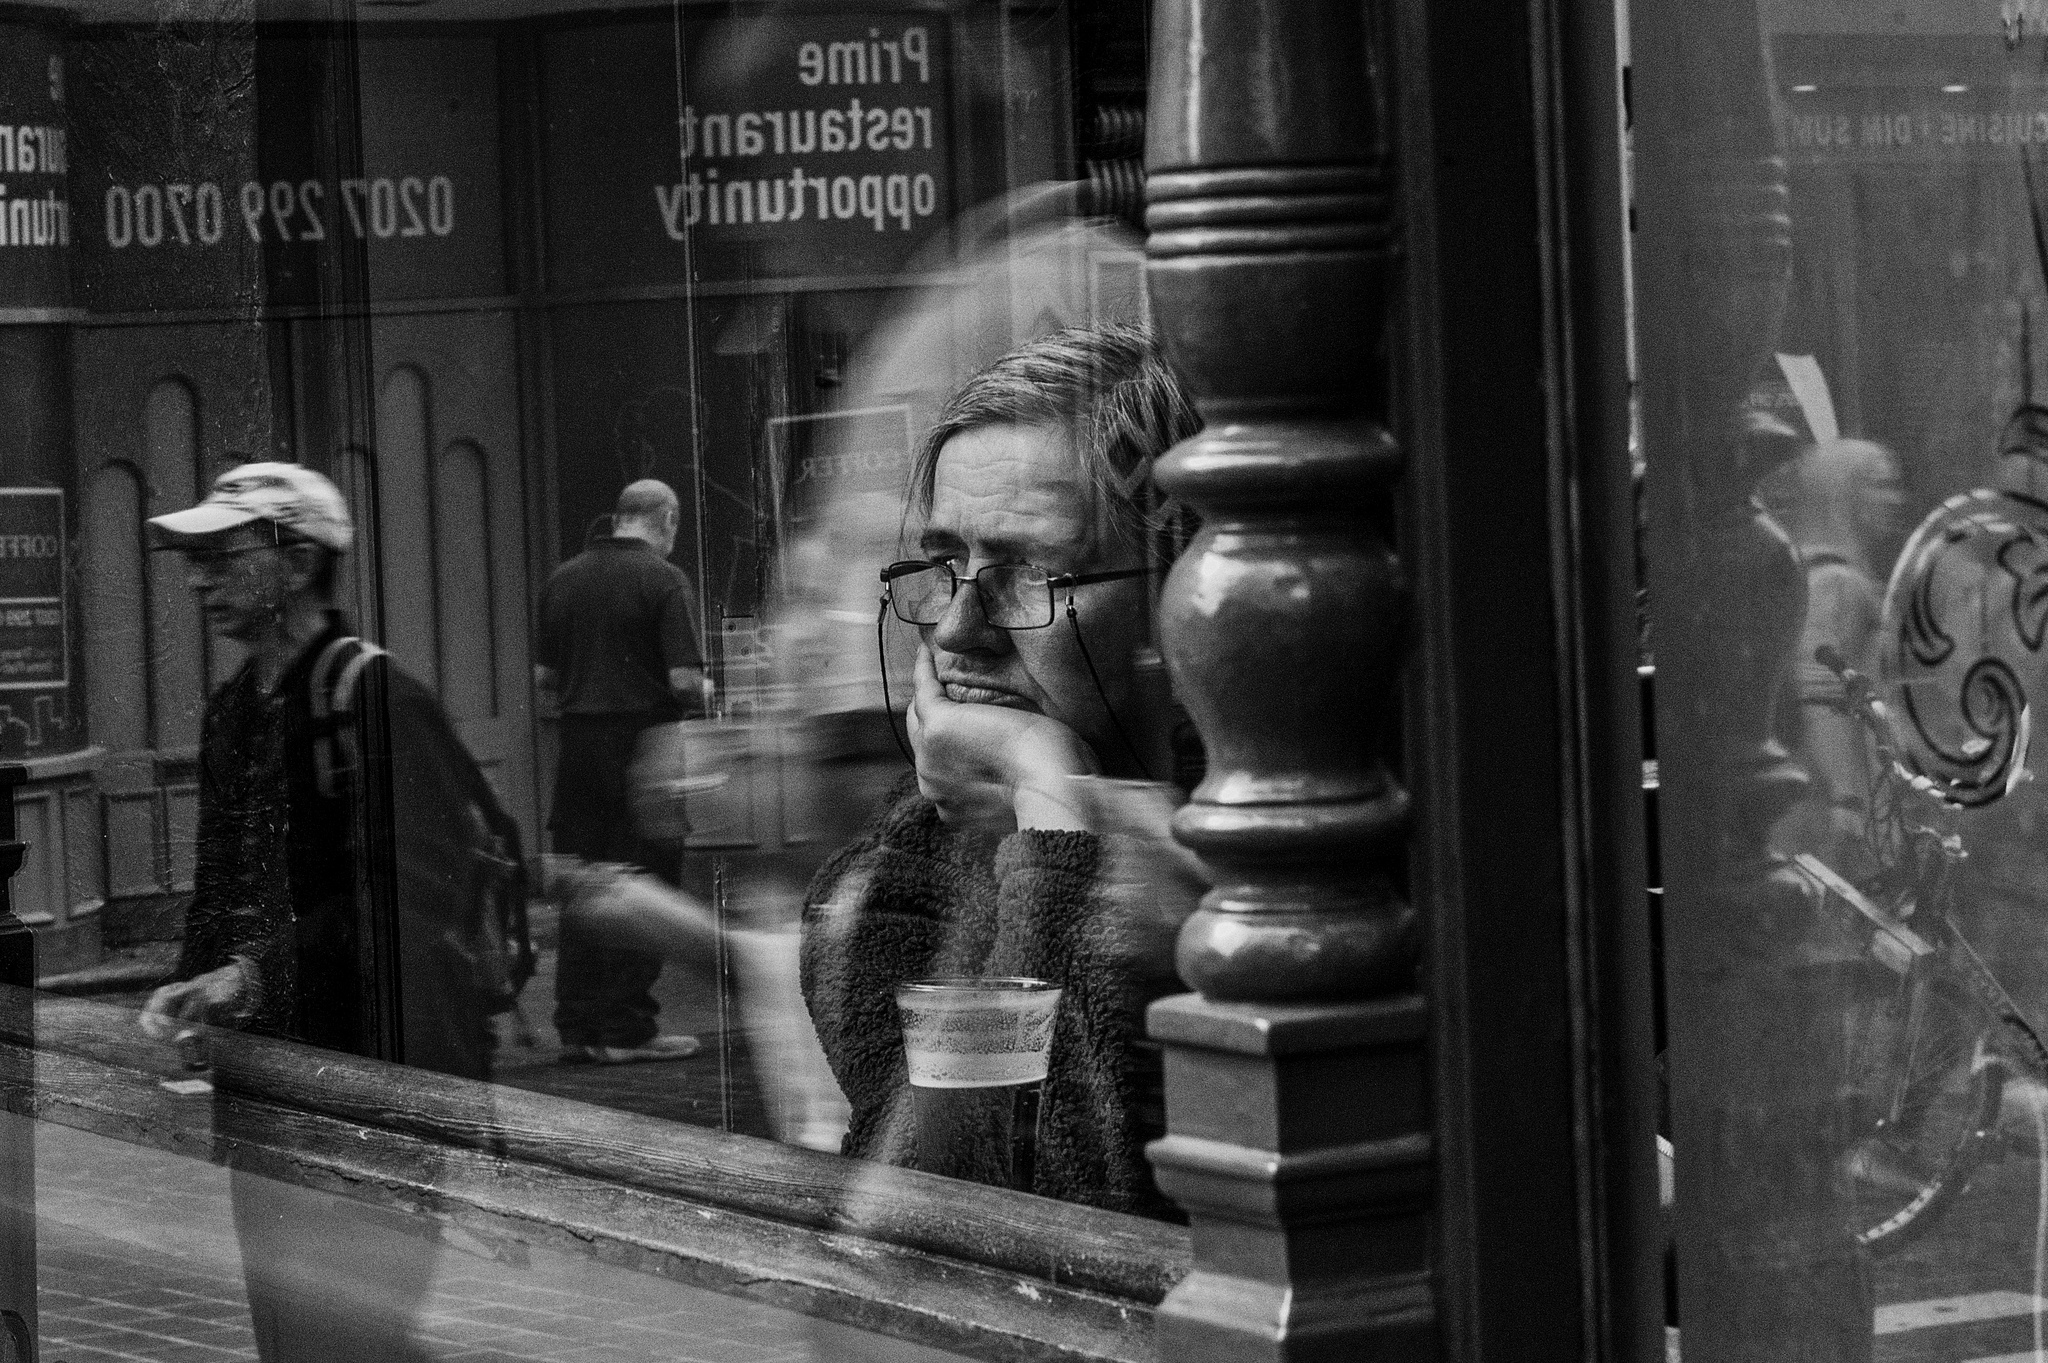 A man looks through a window in this black and white photograph.